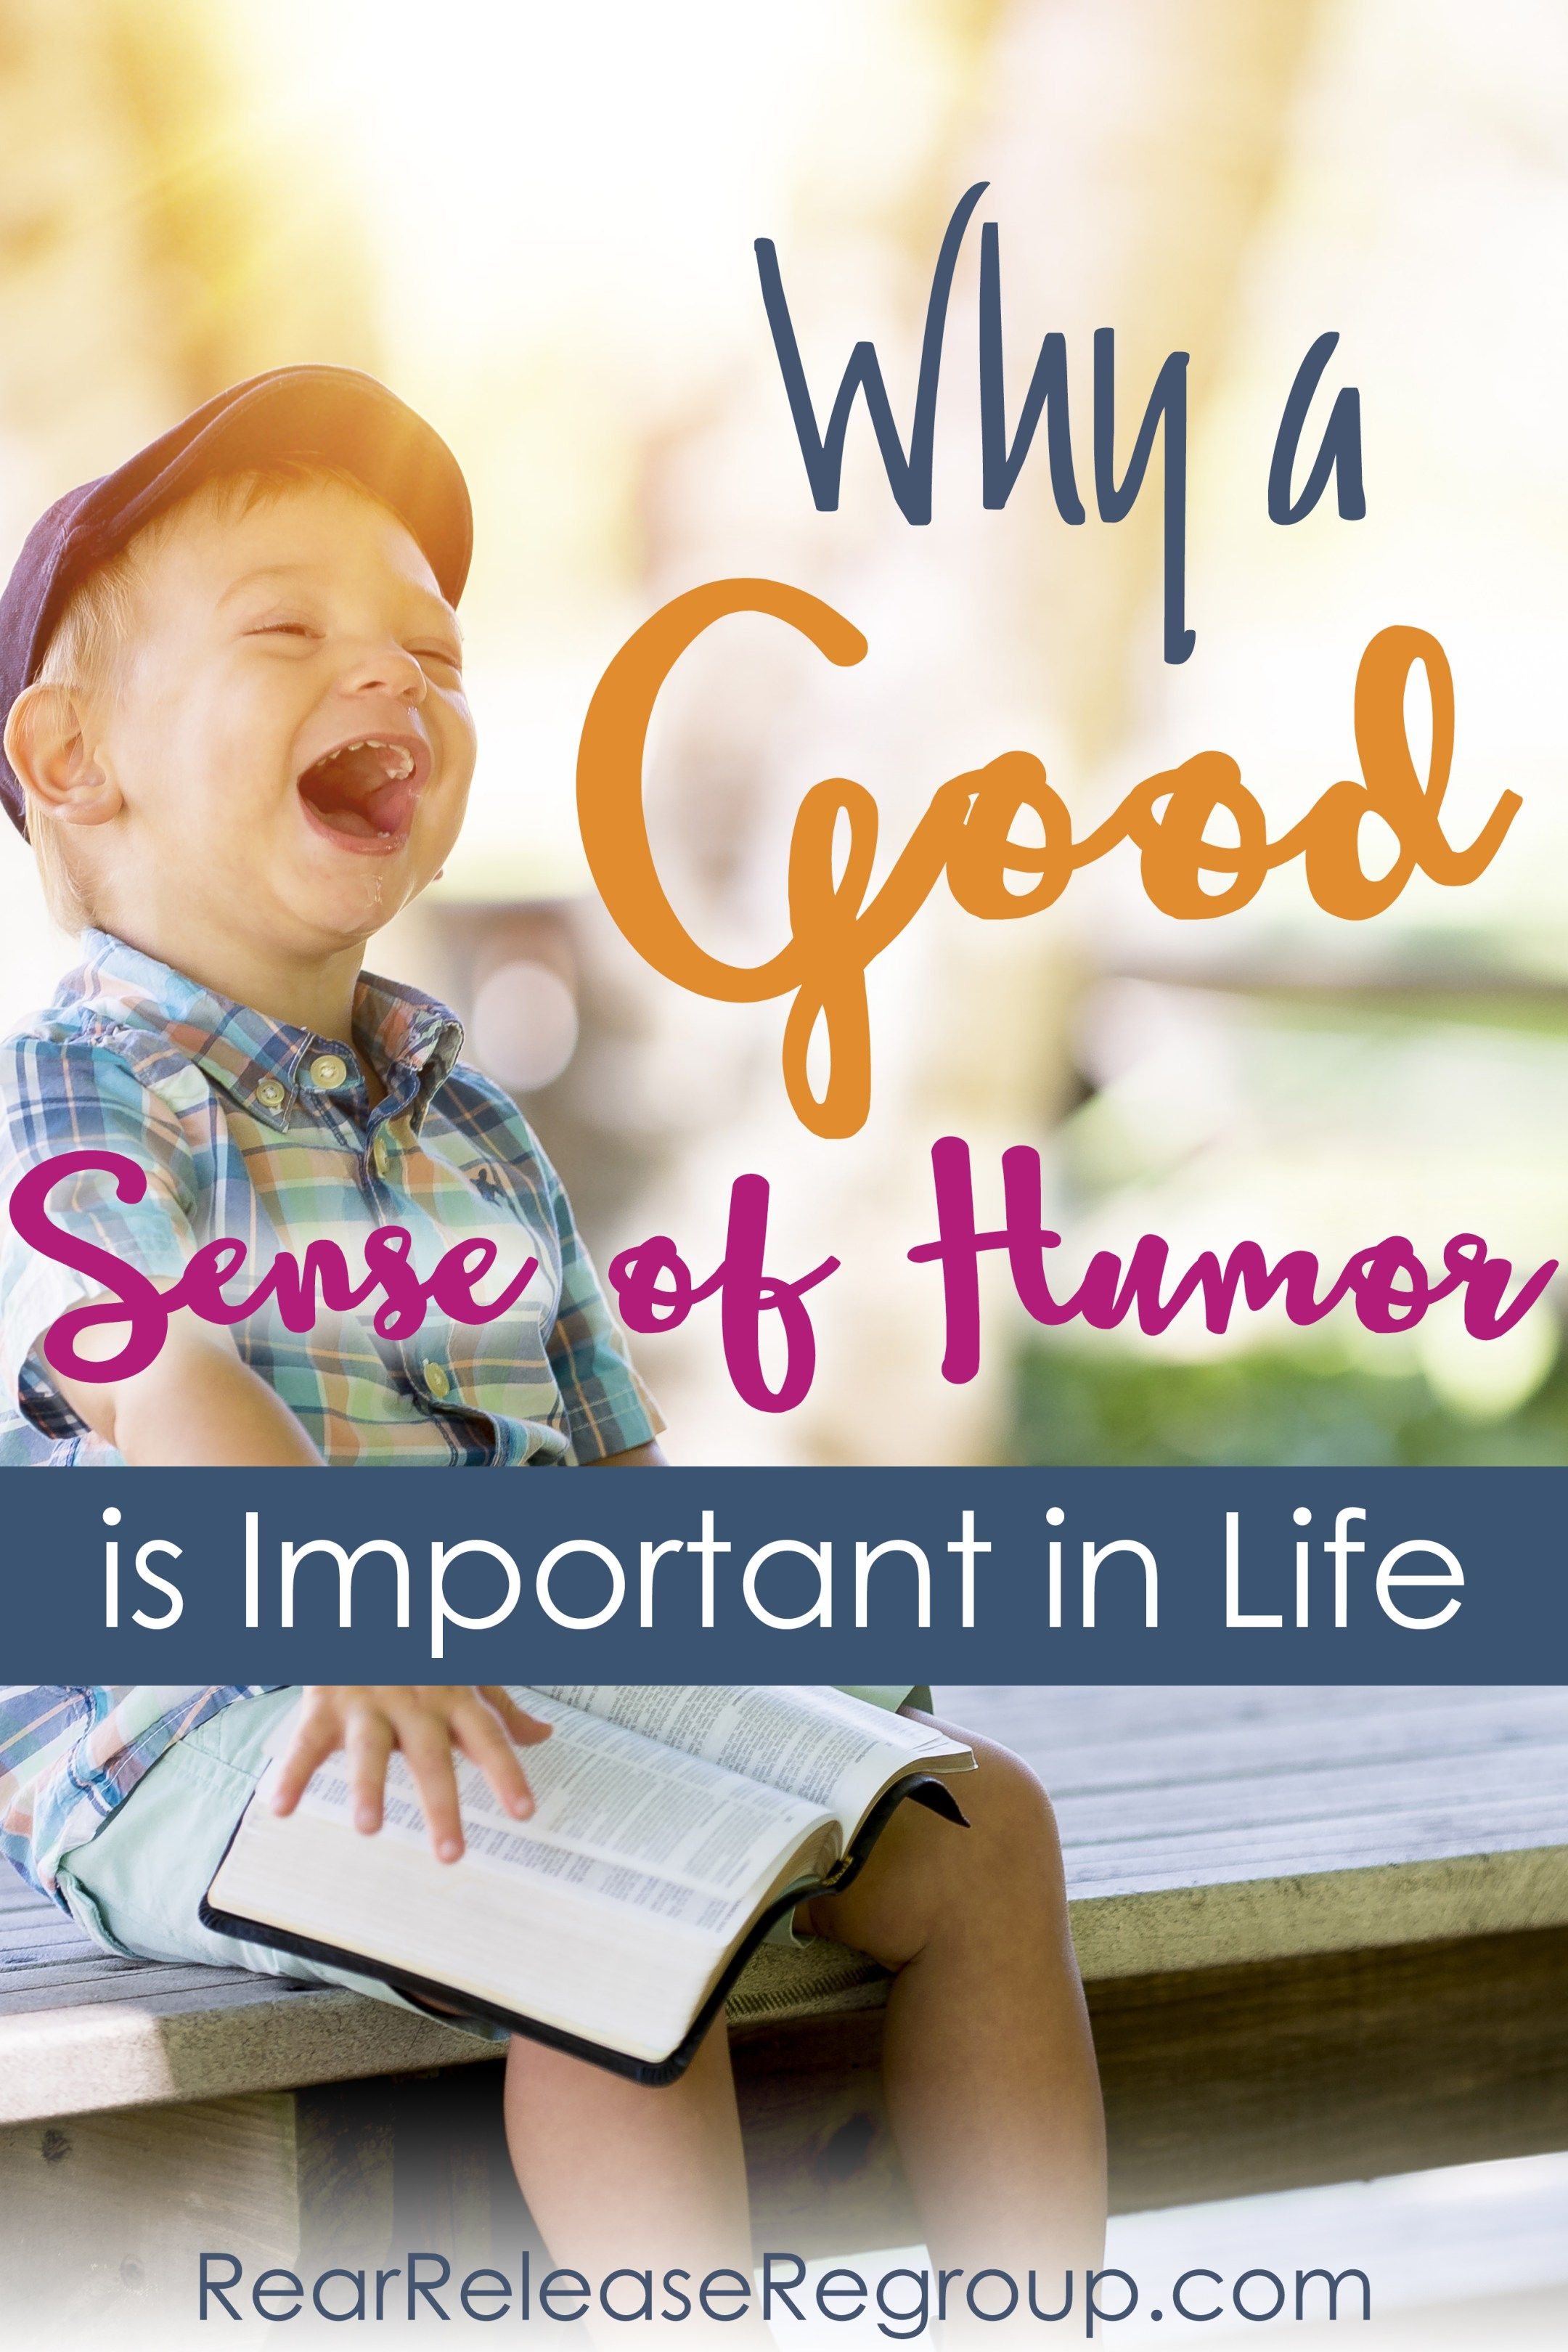 Why is sense of humor important